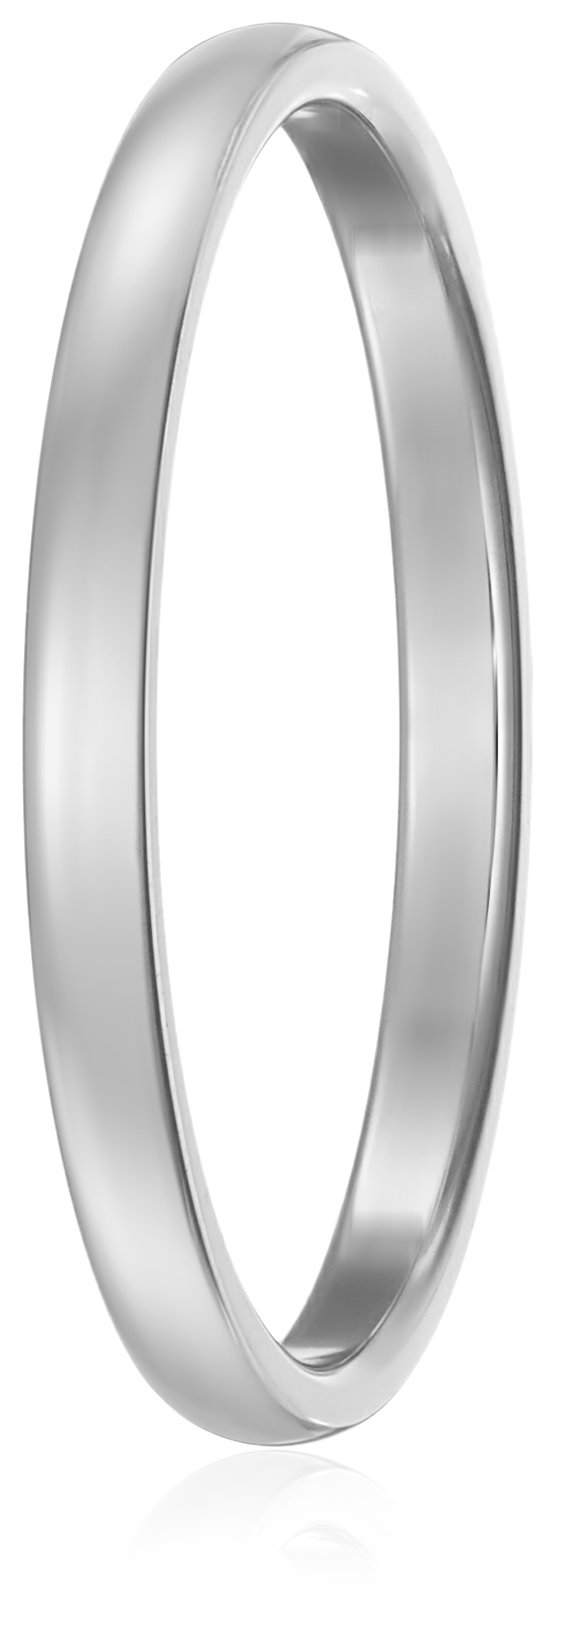 Classic Fit 14K White Gold Band, 2mm, Size 8.5 by Amazon Collection (Image #2)